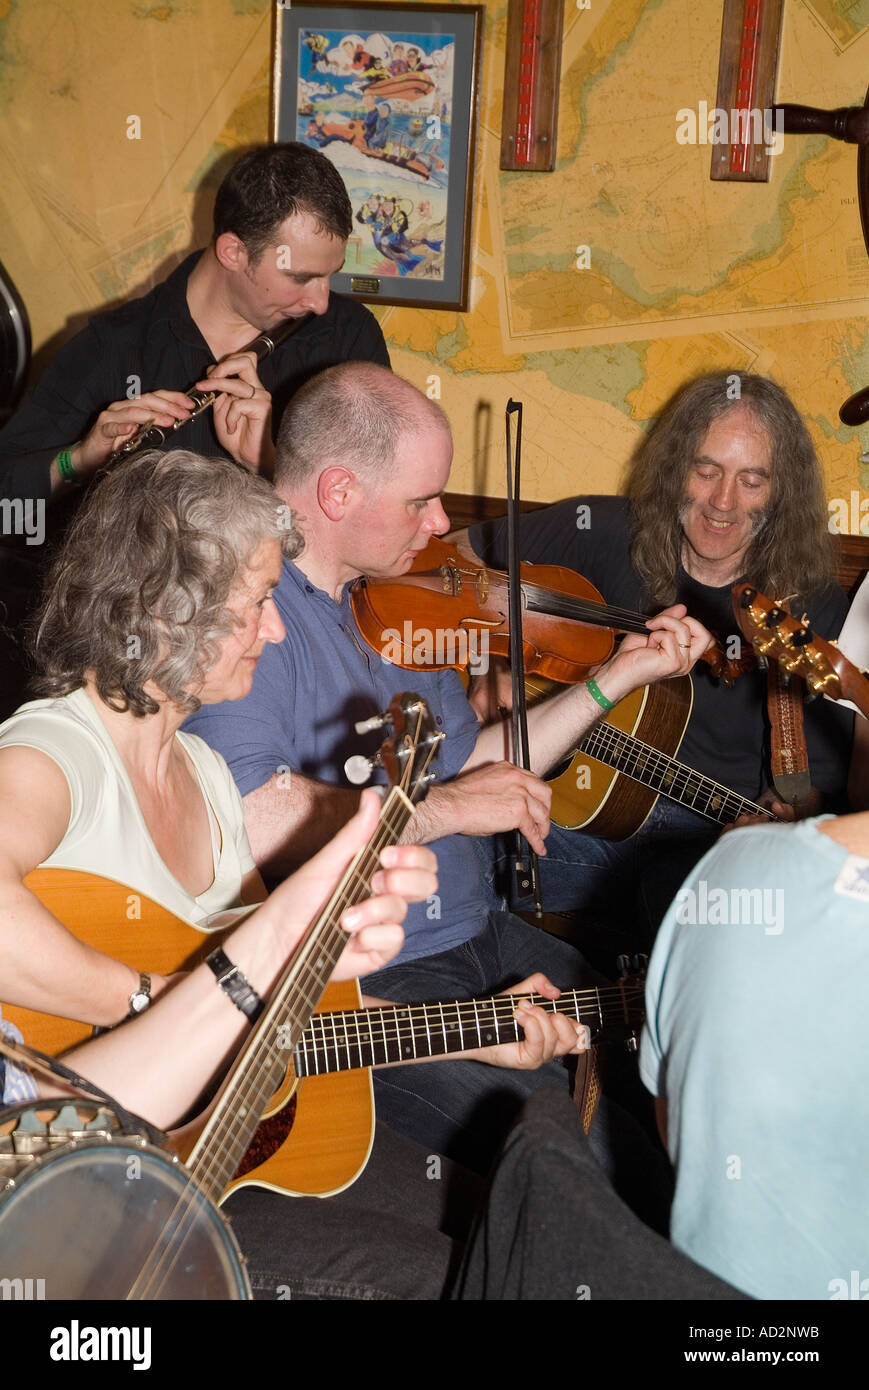 dh Orkney Folk Festival STROMNESS ORKNEY Musicians playing musical instruments at the Ferry Inn public house Stock Photo